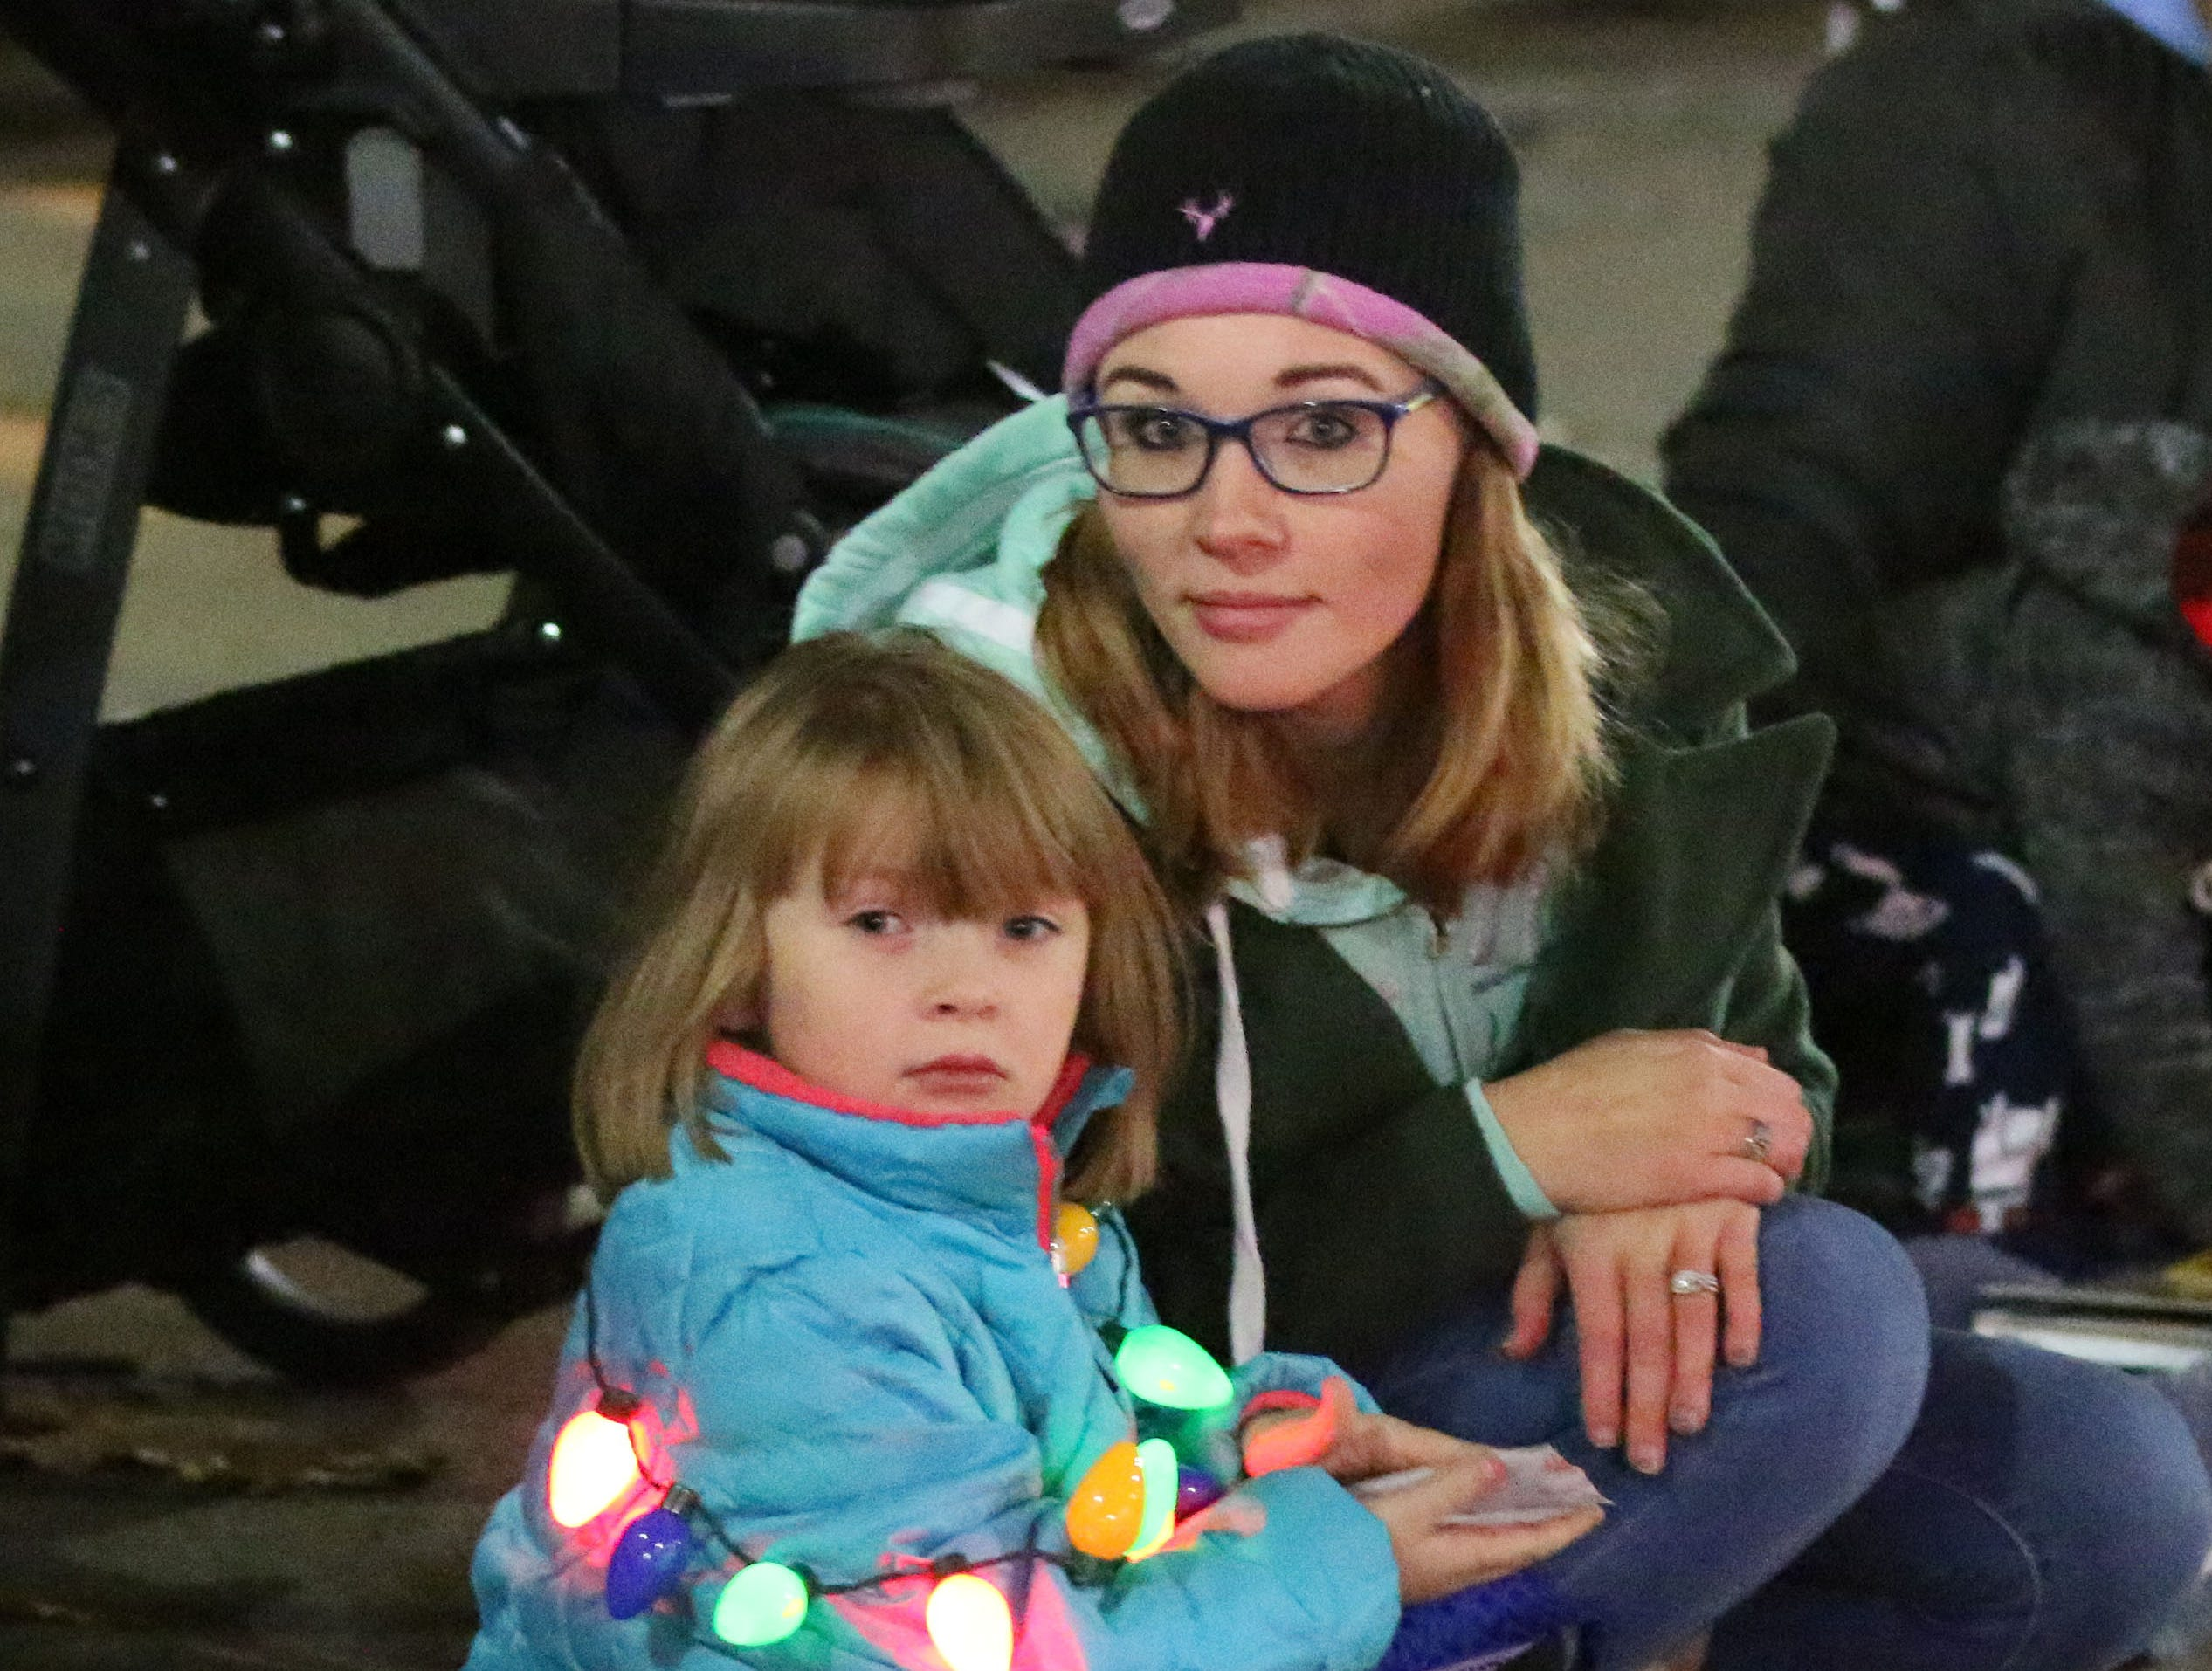 Rylee Lecher, 5, and her mom Jamie Diekow wait for the Plymouth Christmas Parade to begin, Friday, November 23, 2018, in Plymouth, Wis.